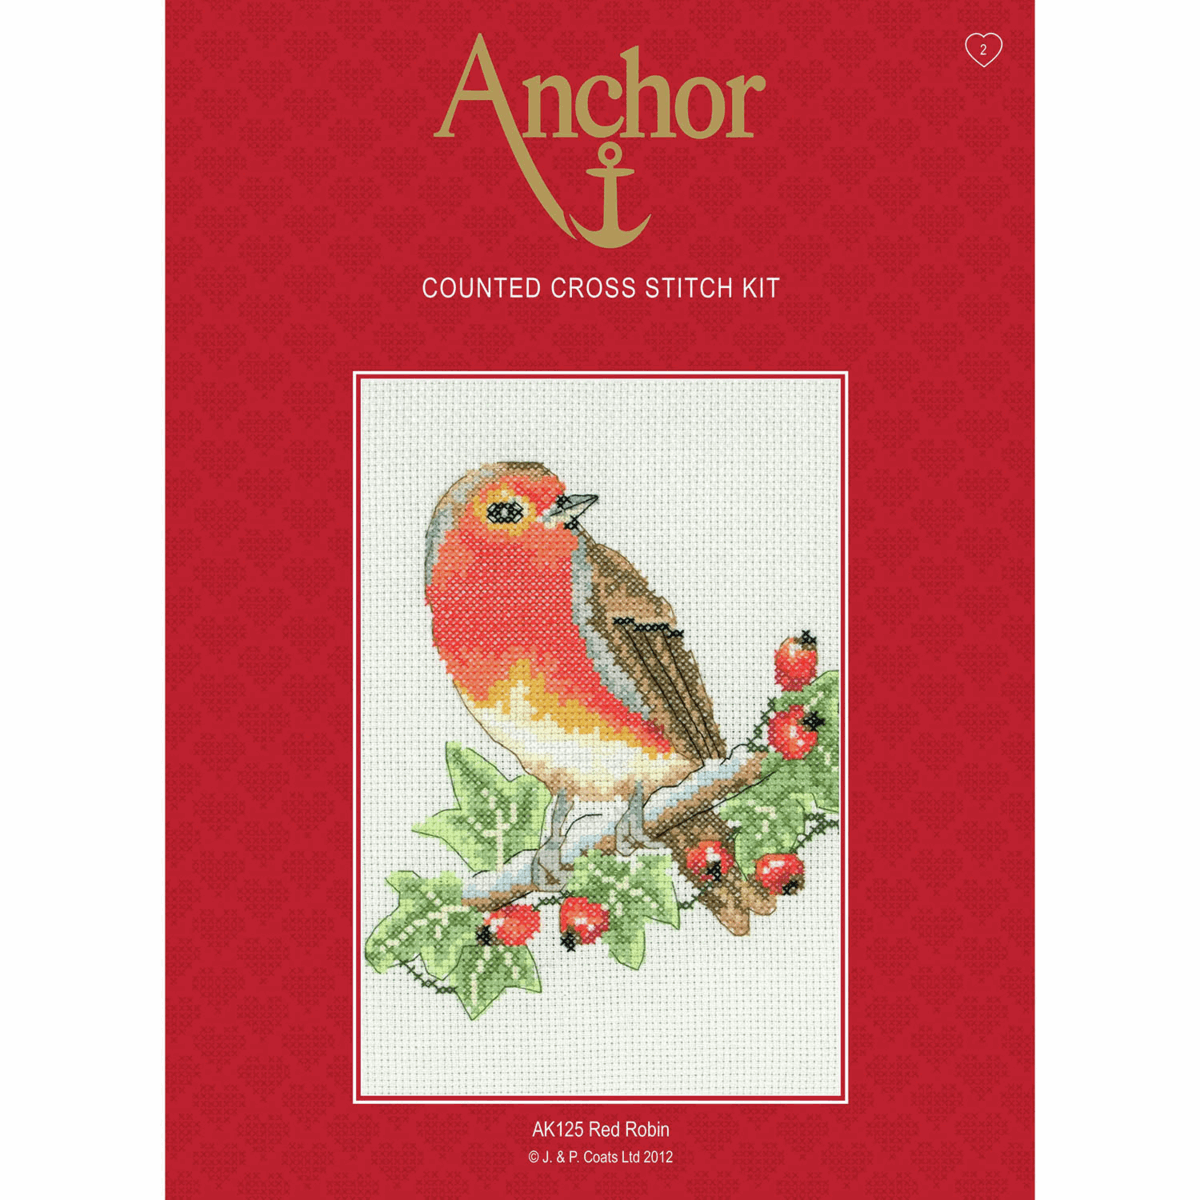 Red Robin Anchor Cross Stitch Kit suitable for beginners